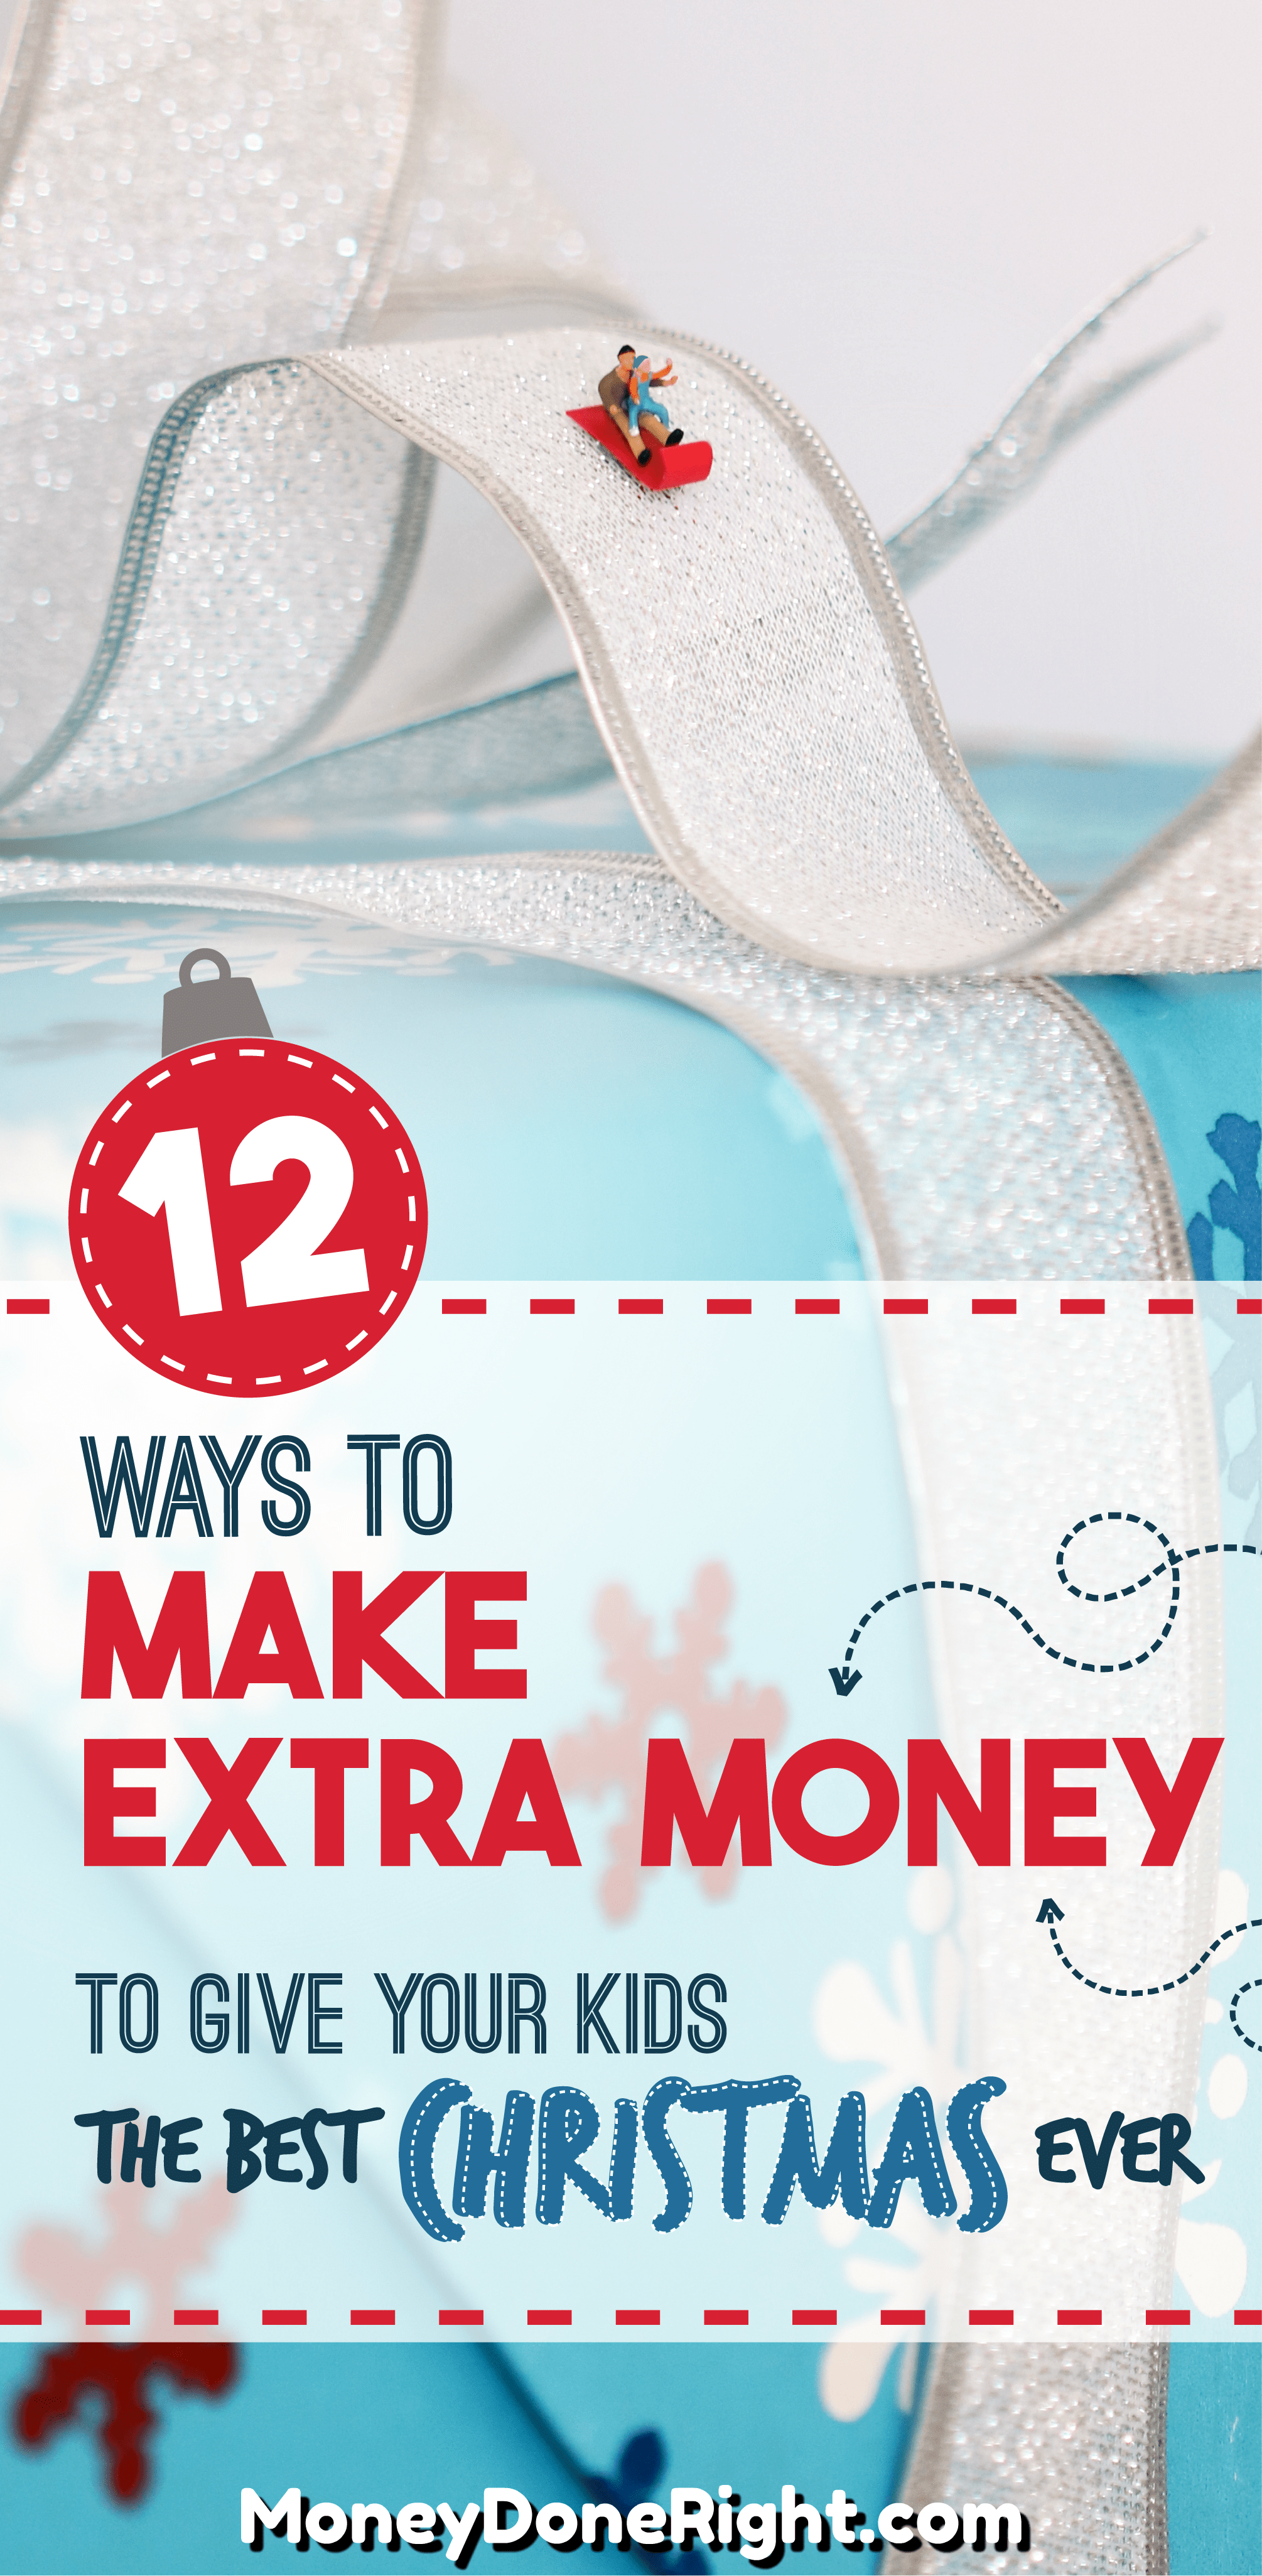 12 Ways to Make Extra Money for Christmas